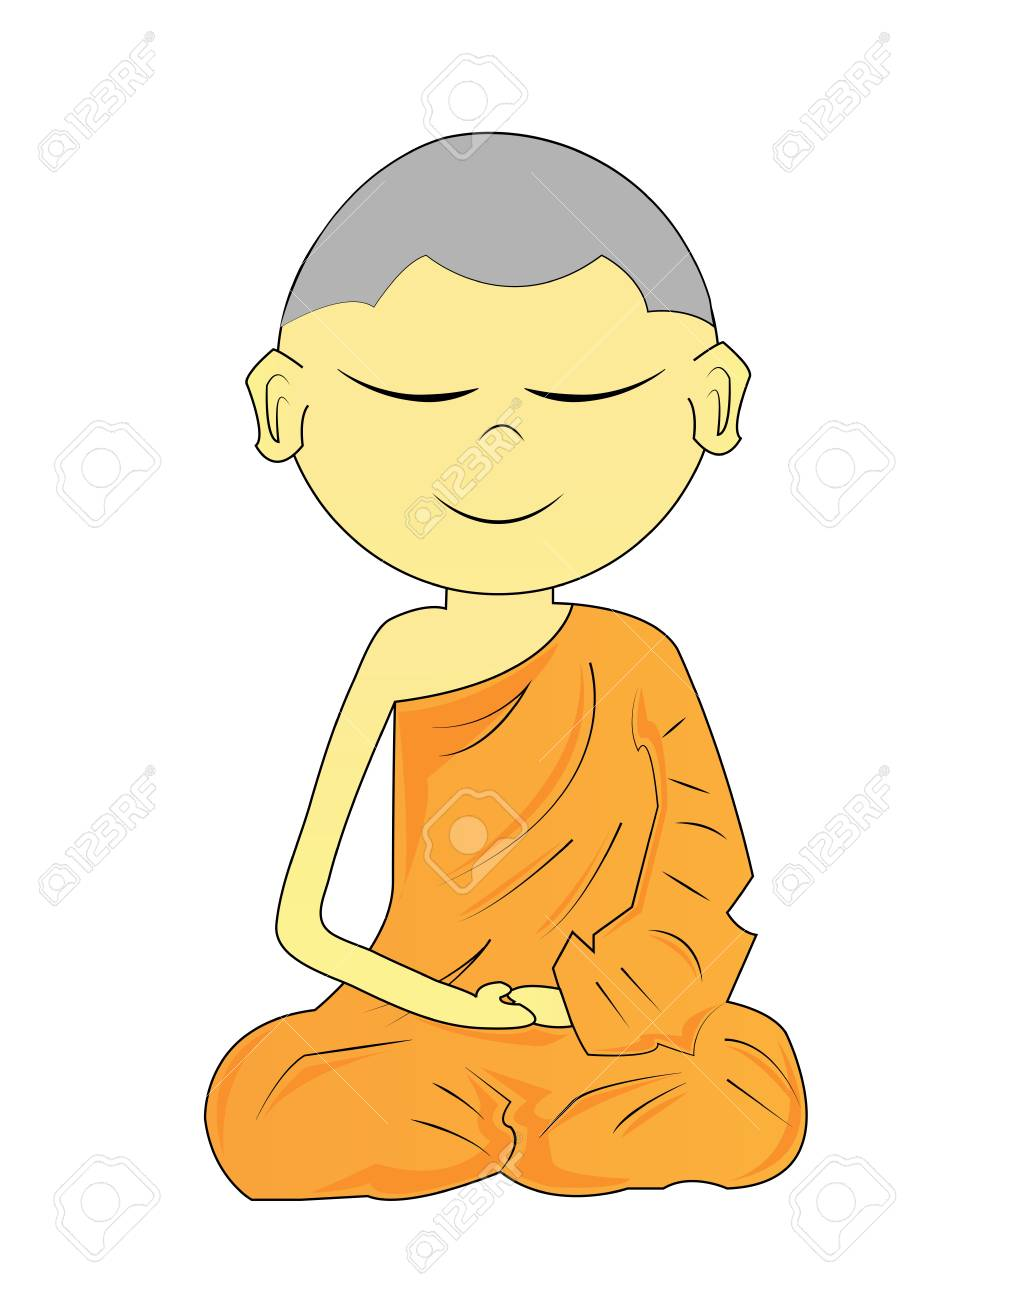 Buddhist Monk cartoon on a white background Stock Photo - 18656587